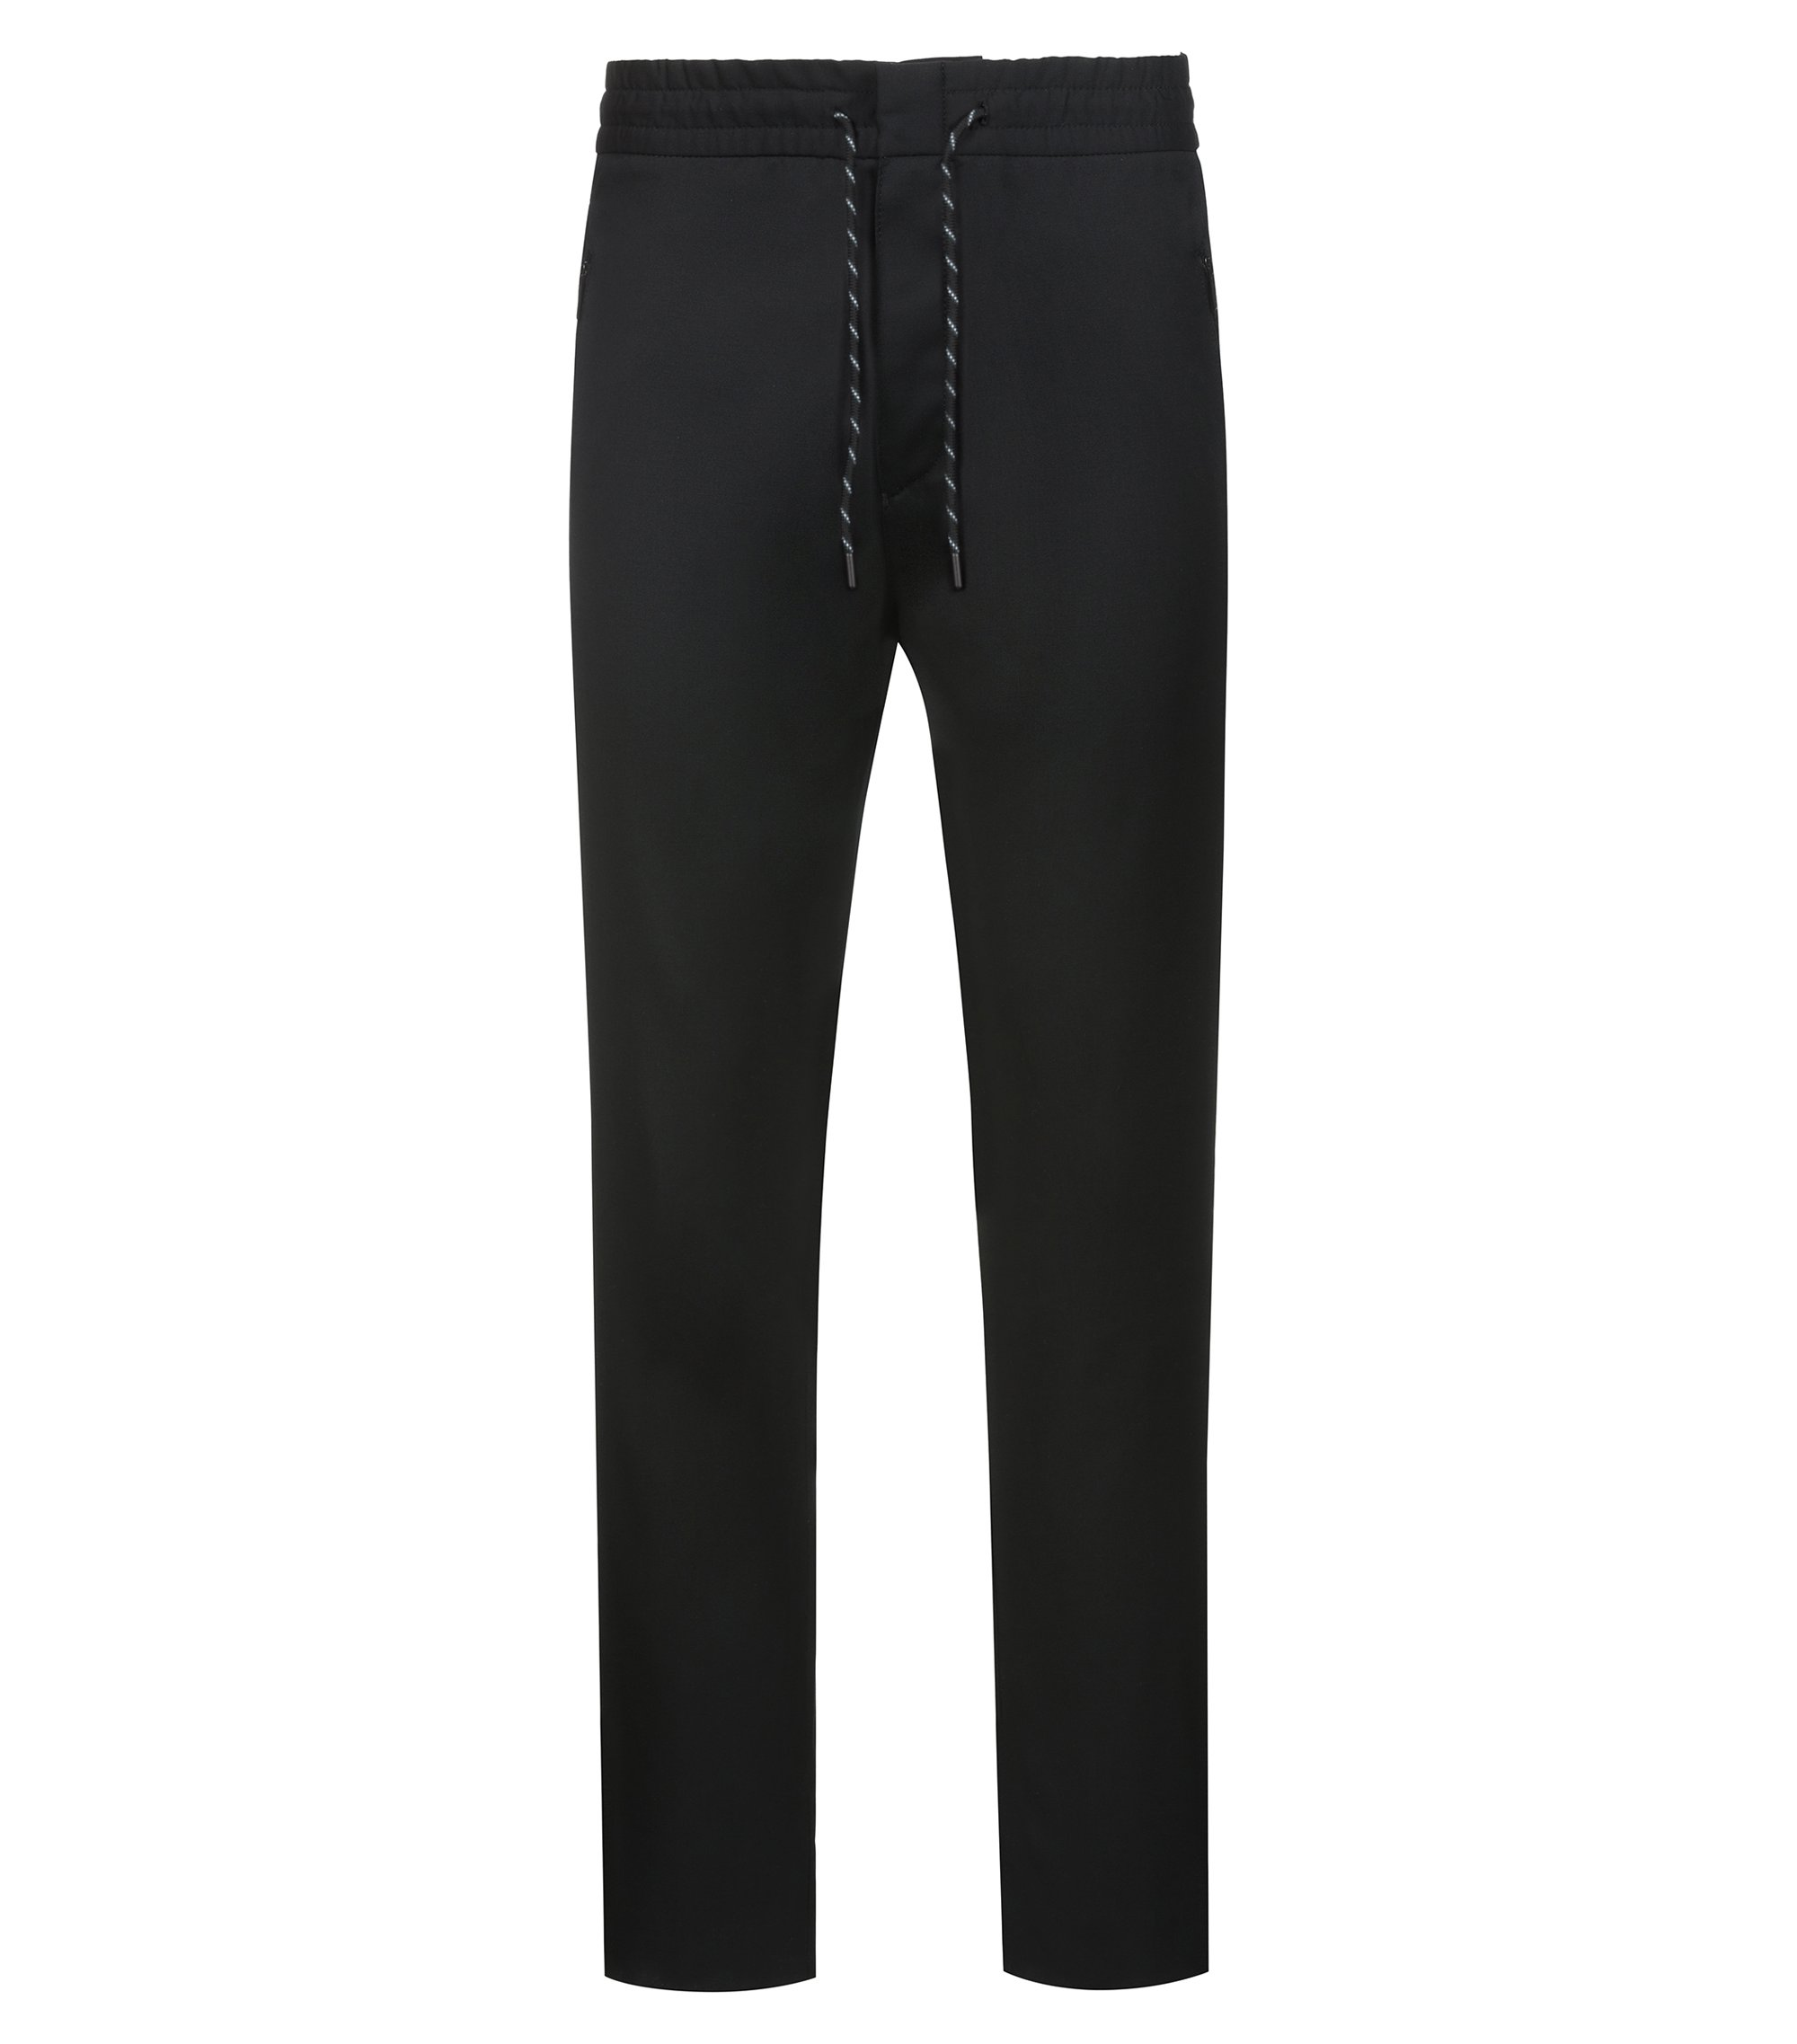 Pantalon Tapered Fit à cordon de serrage en laine vierge, issu de la collection capsule Bits & Bytes, Noir